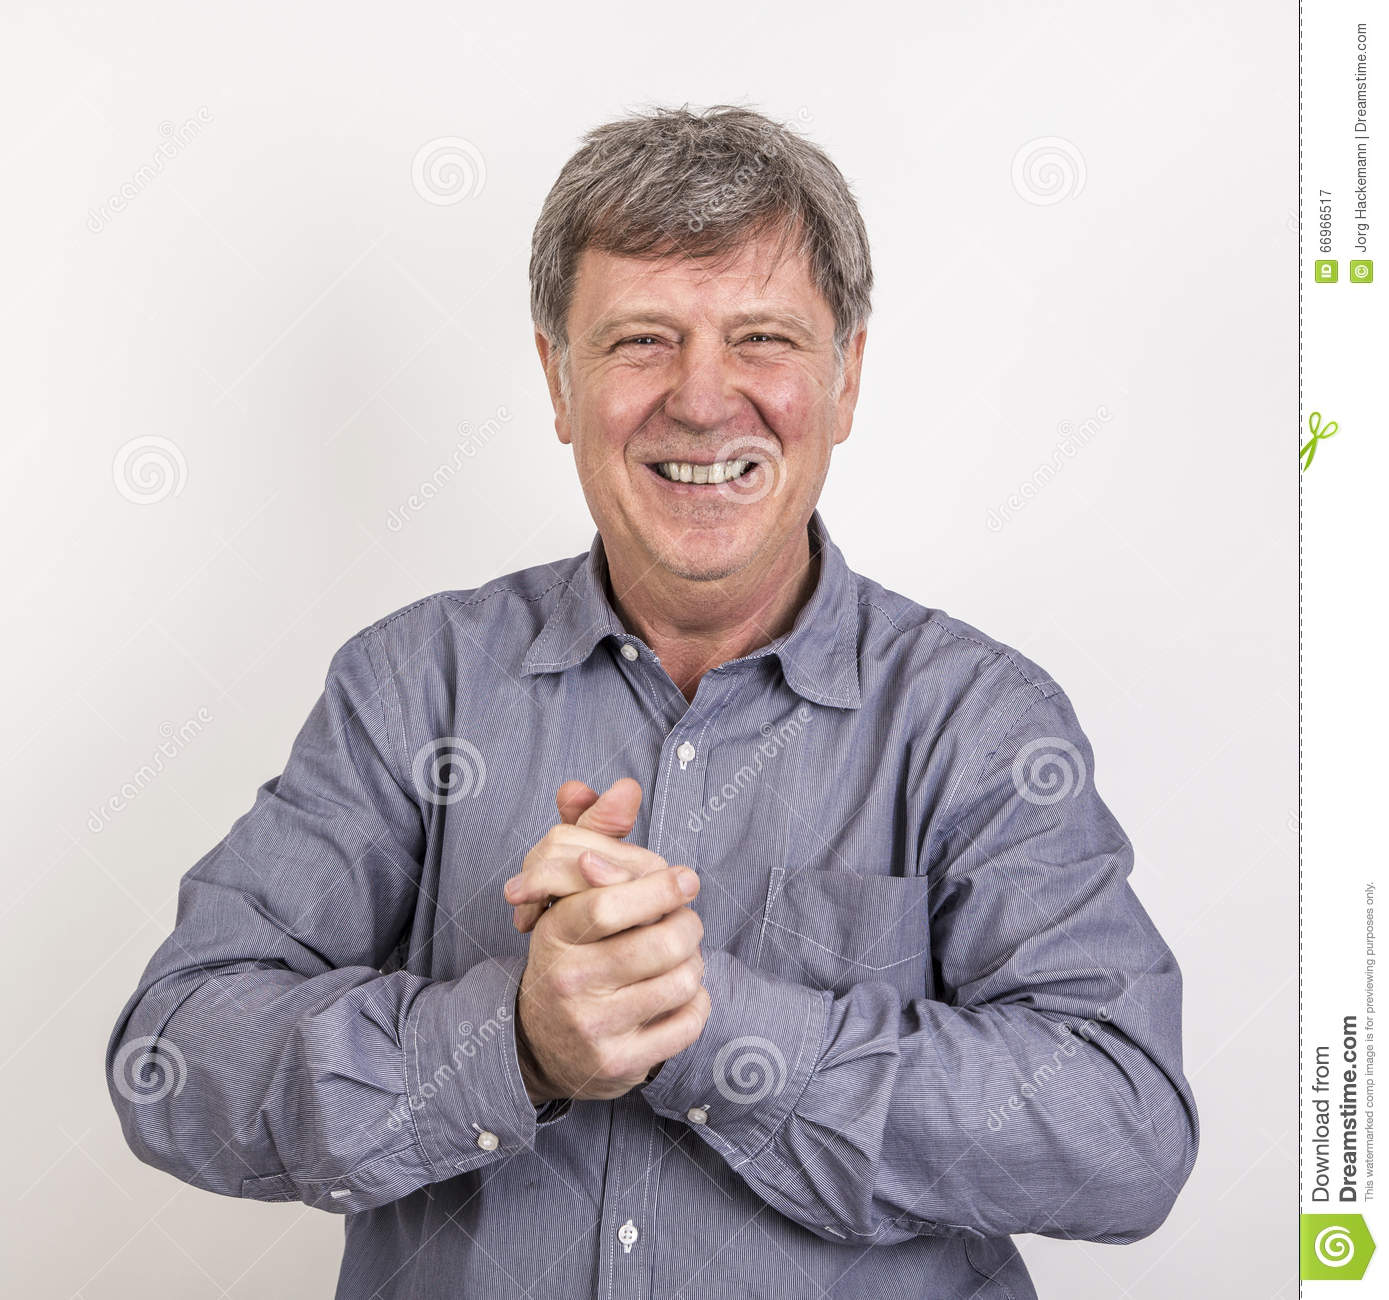 Attractive 50 Years Old Casual Dressed Man Stock Image